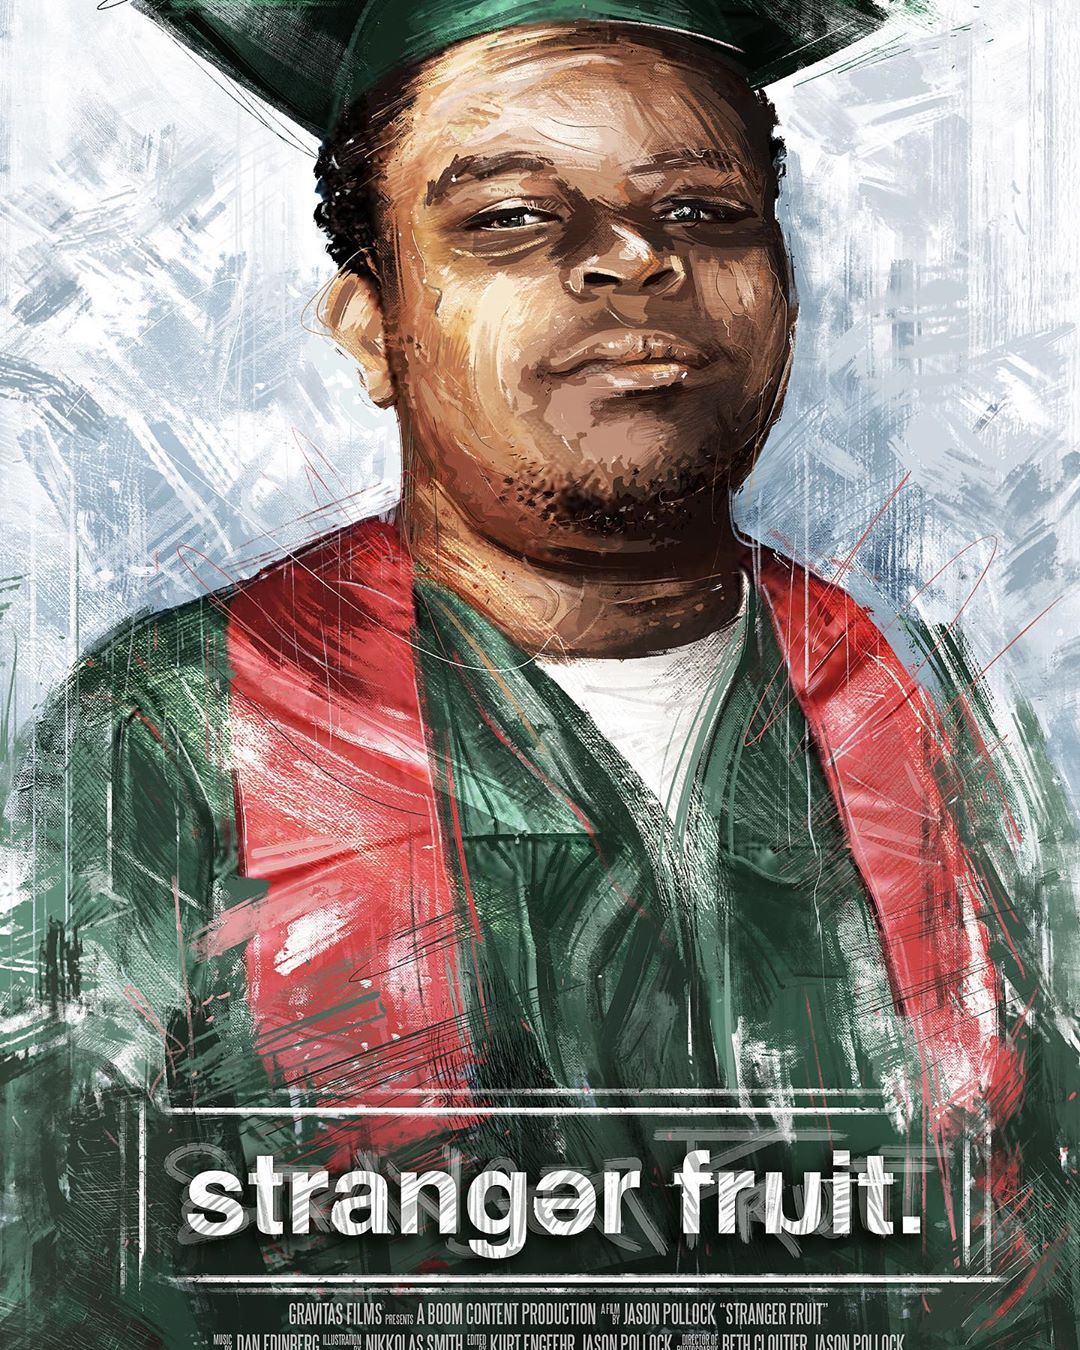 Mike Brown Stranger Fruit by Nikkolas Smith